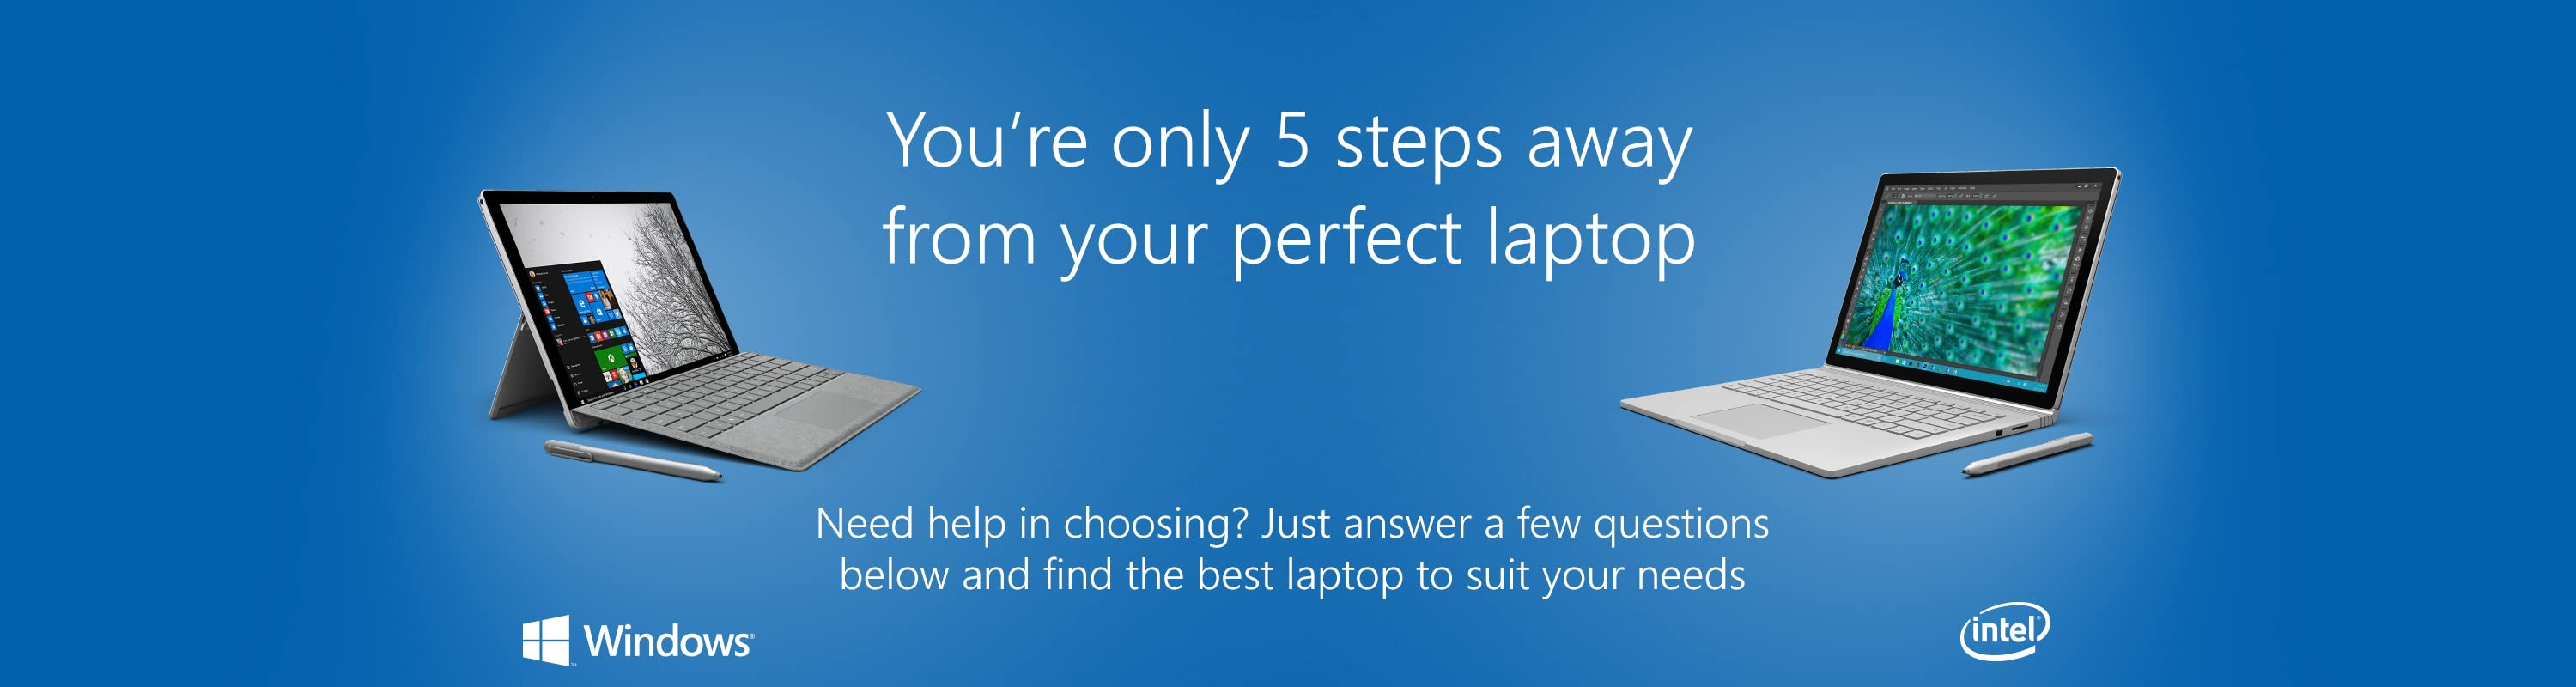 You're only 5 steps away from your perfect laptop